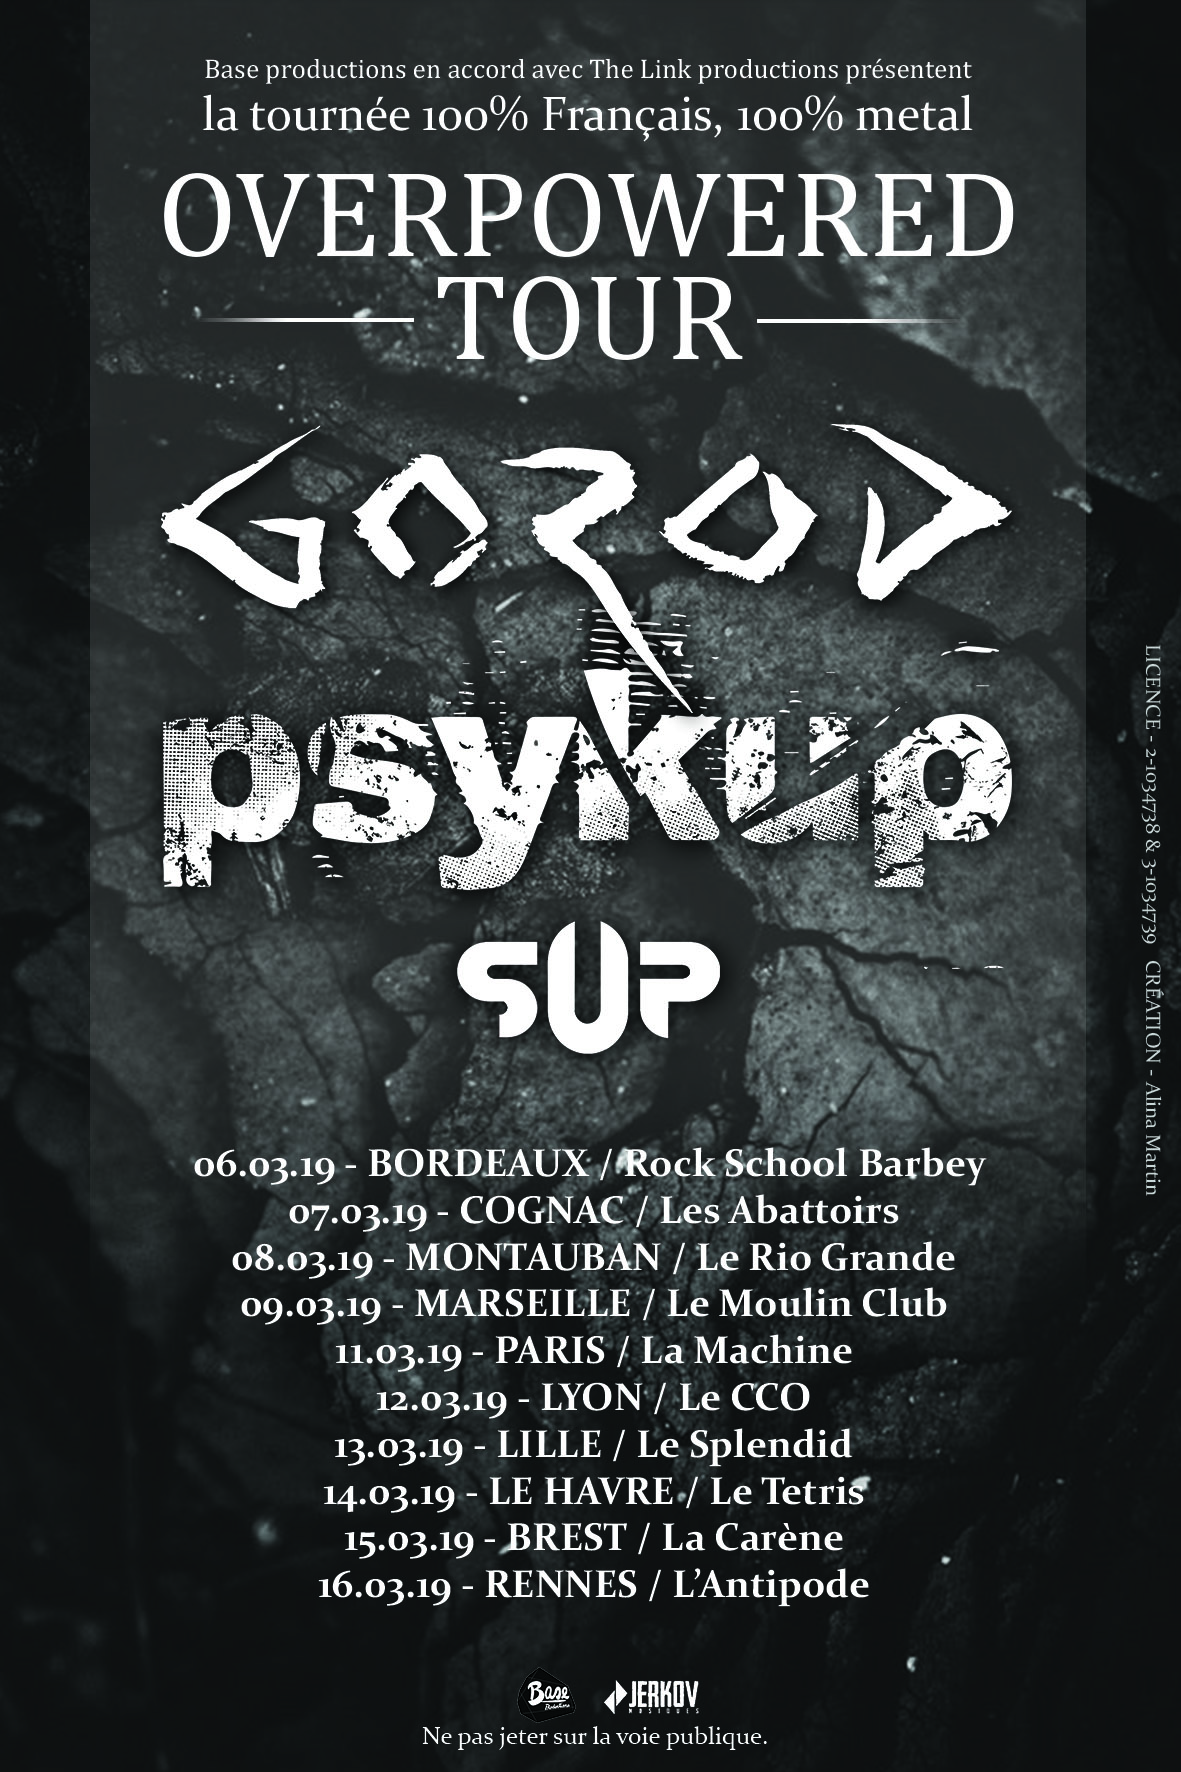 Gorod + SUP + Psykup @ la Machine du Moulin Rouge (Paris), le 11 Mars 2019